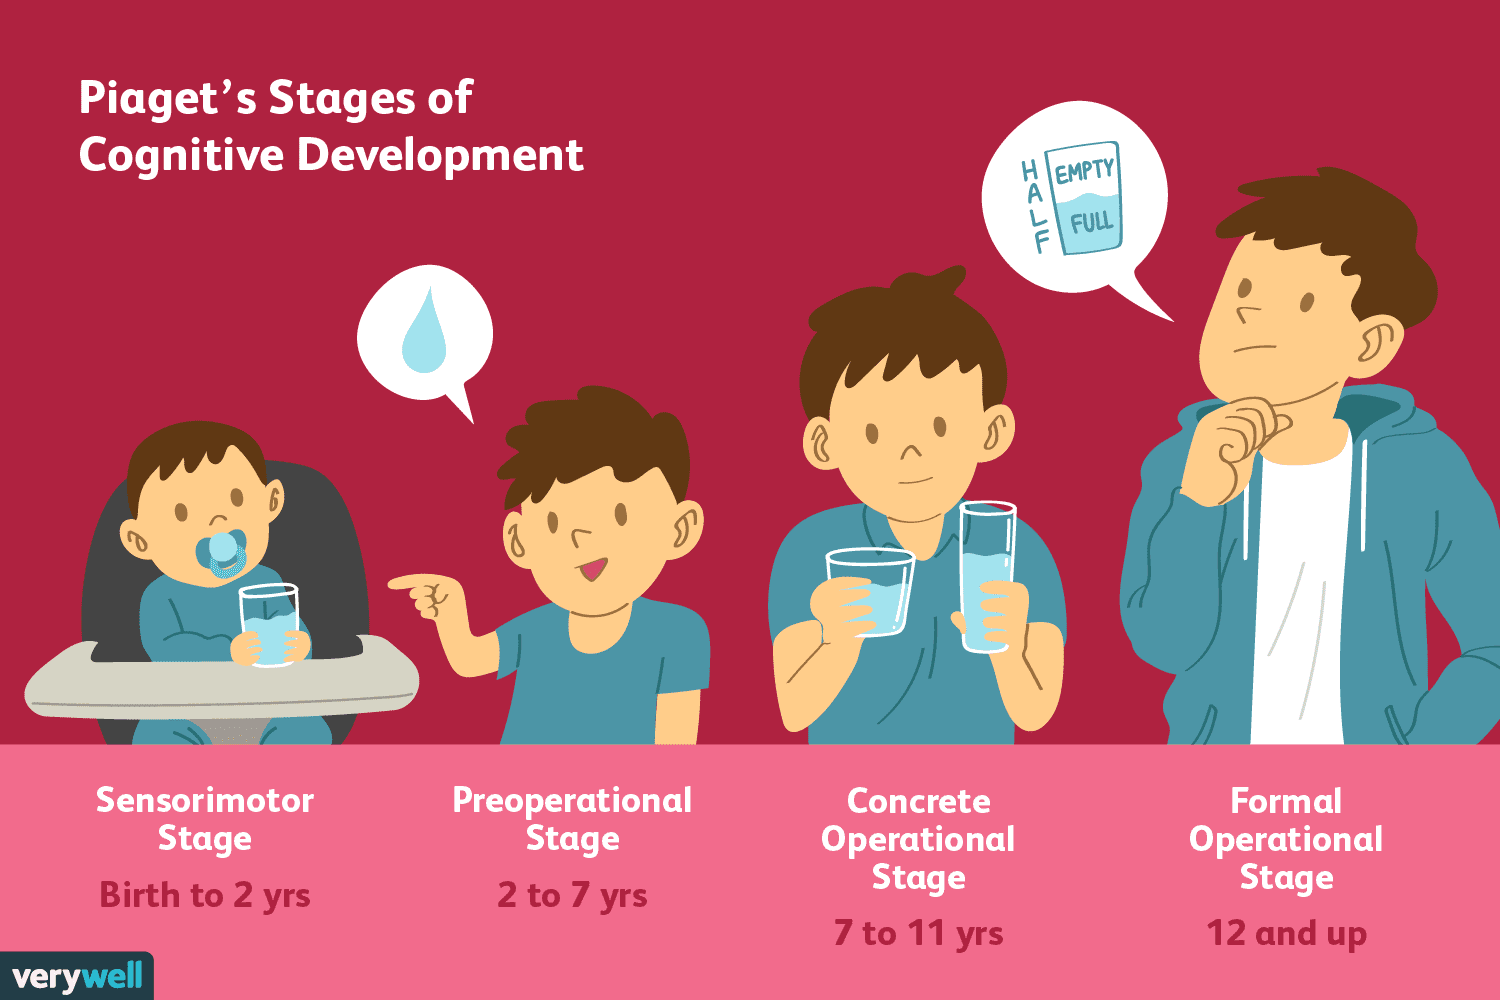 Jean piaget clipart banner freeuse Piaget\'s 4 Stages of Cognitive Development Explained banner freeuse